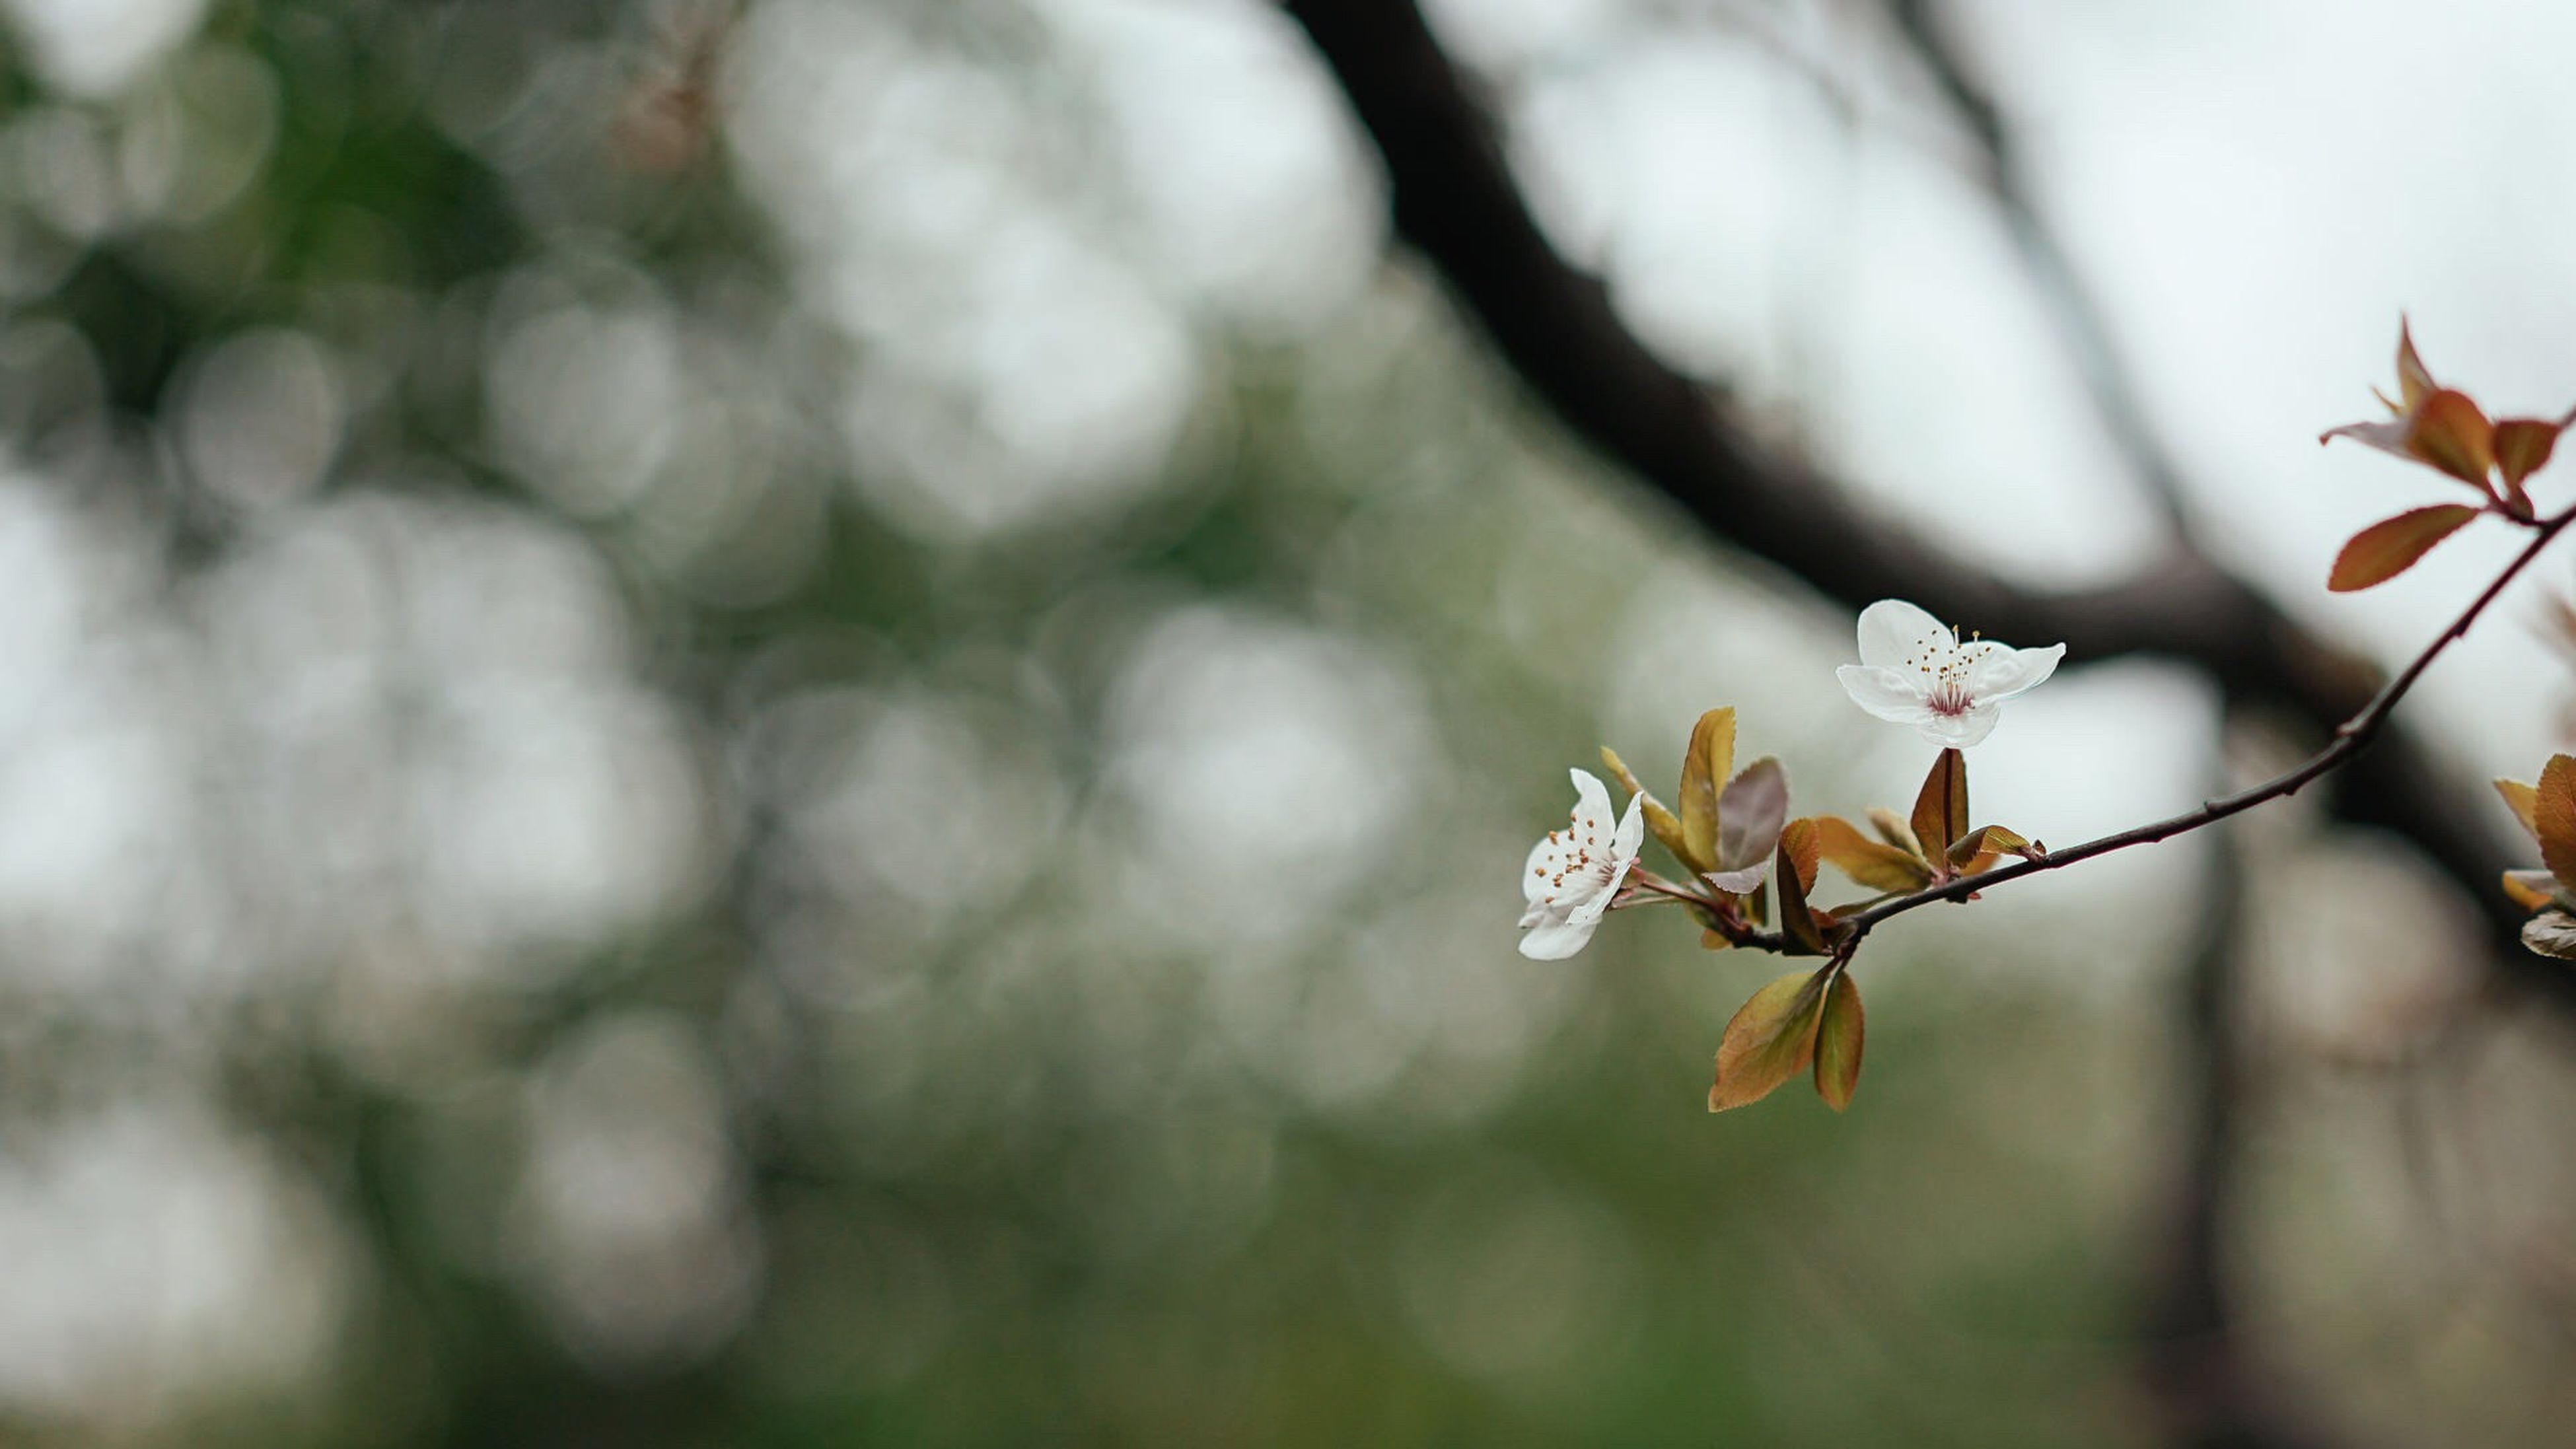 flower, focus on foreground, growth, fragility, freshness, close-up, nature, beauty in nature, branch, selective focus, stem, plant, twig, petal, tree, blooming, day, outdoors, in bloom, blossom